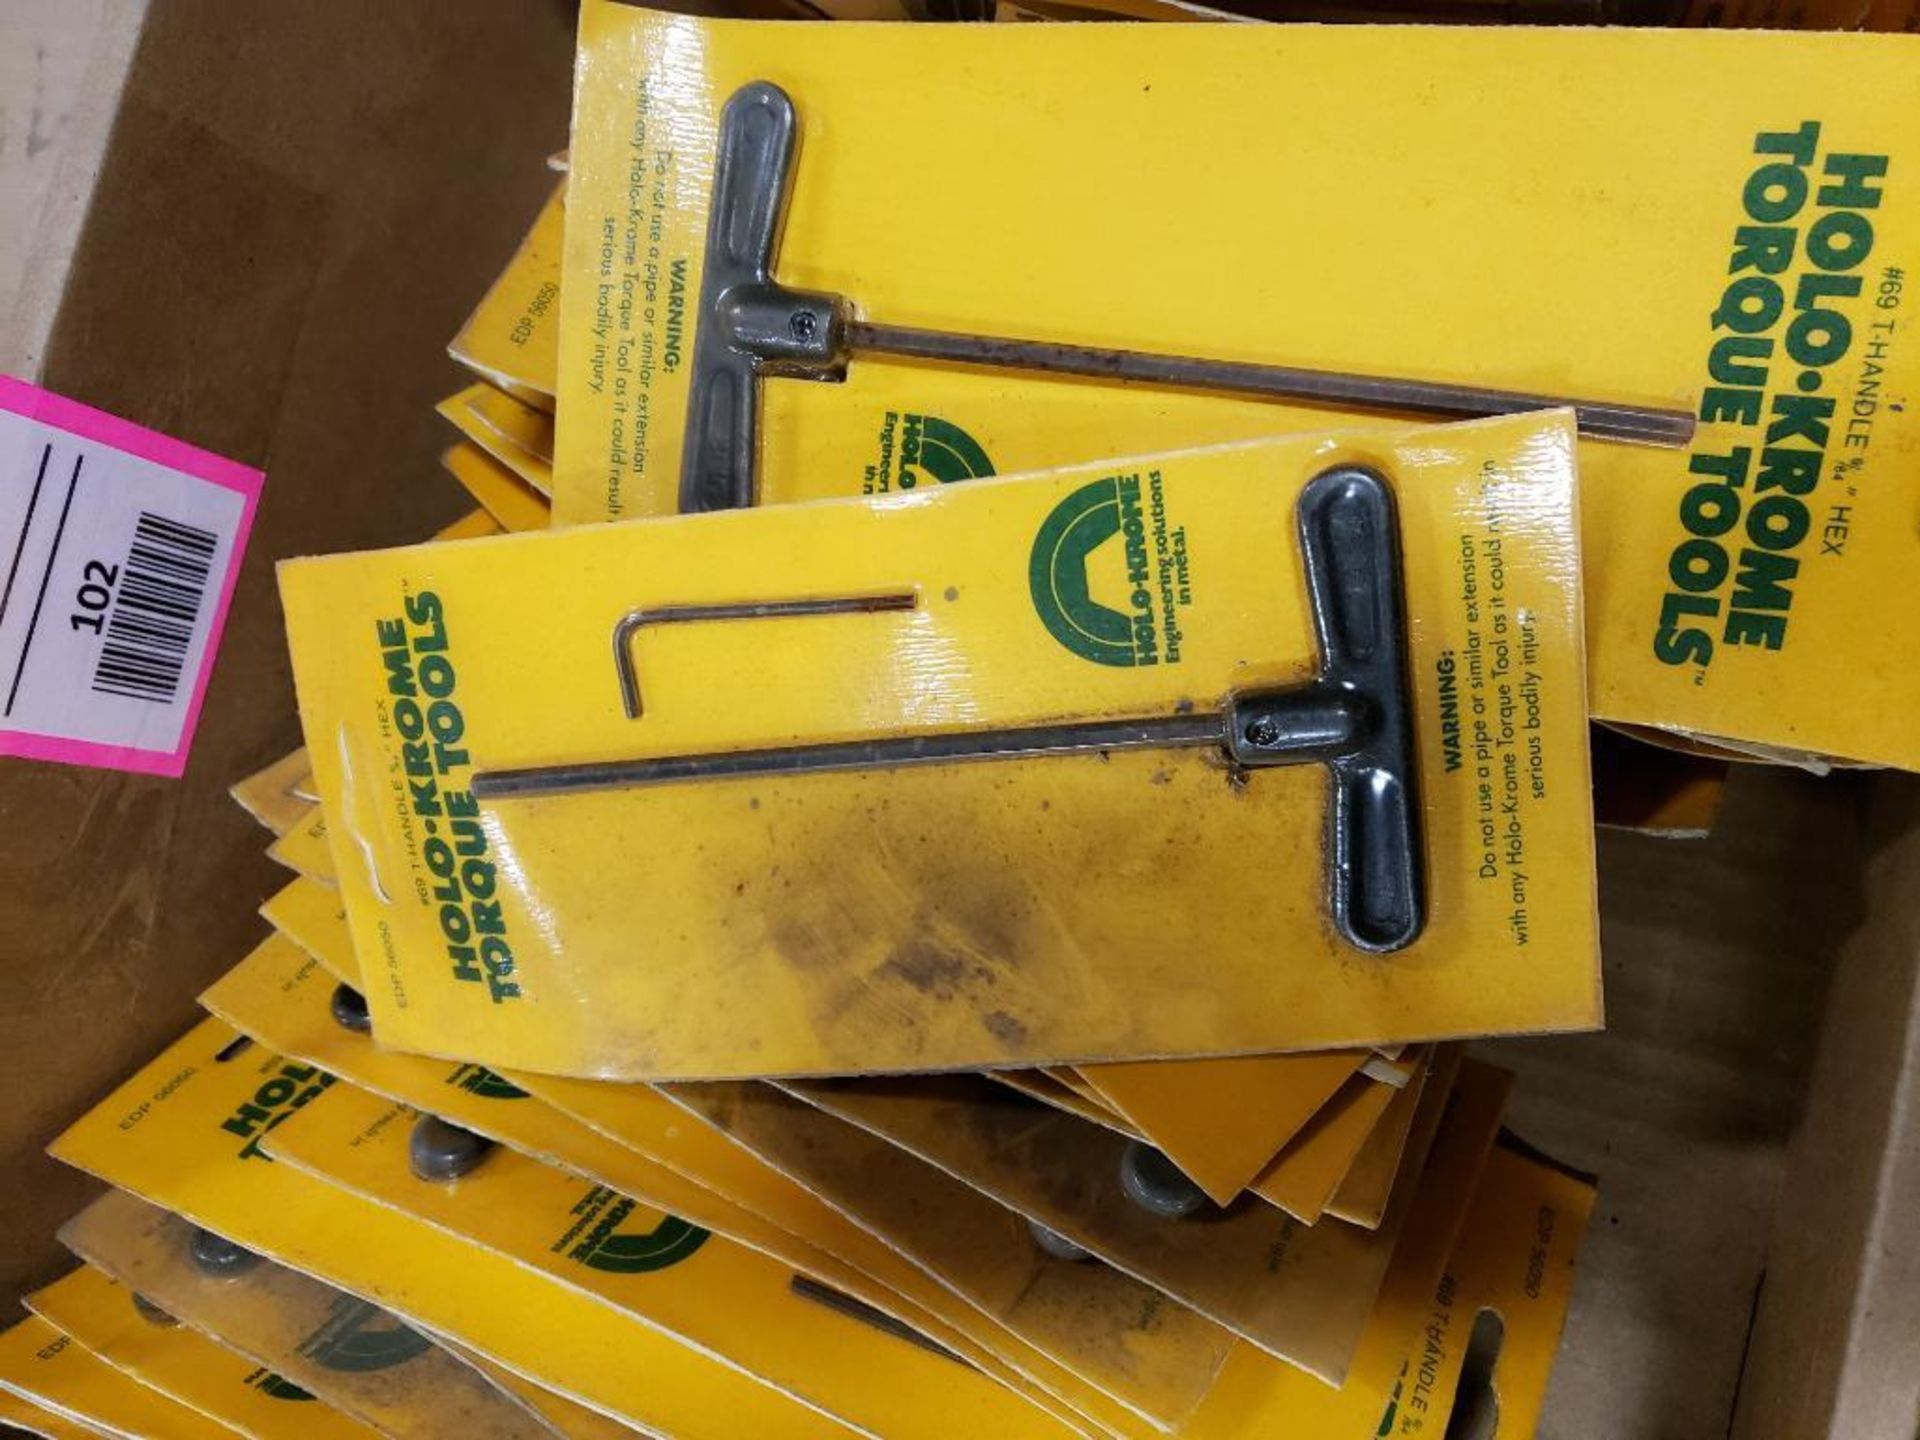 Large Qty of Holo-Krome allen wrenches. New. - Image 4 of 4